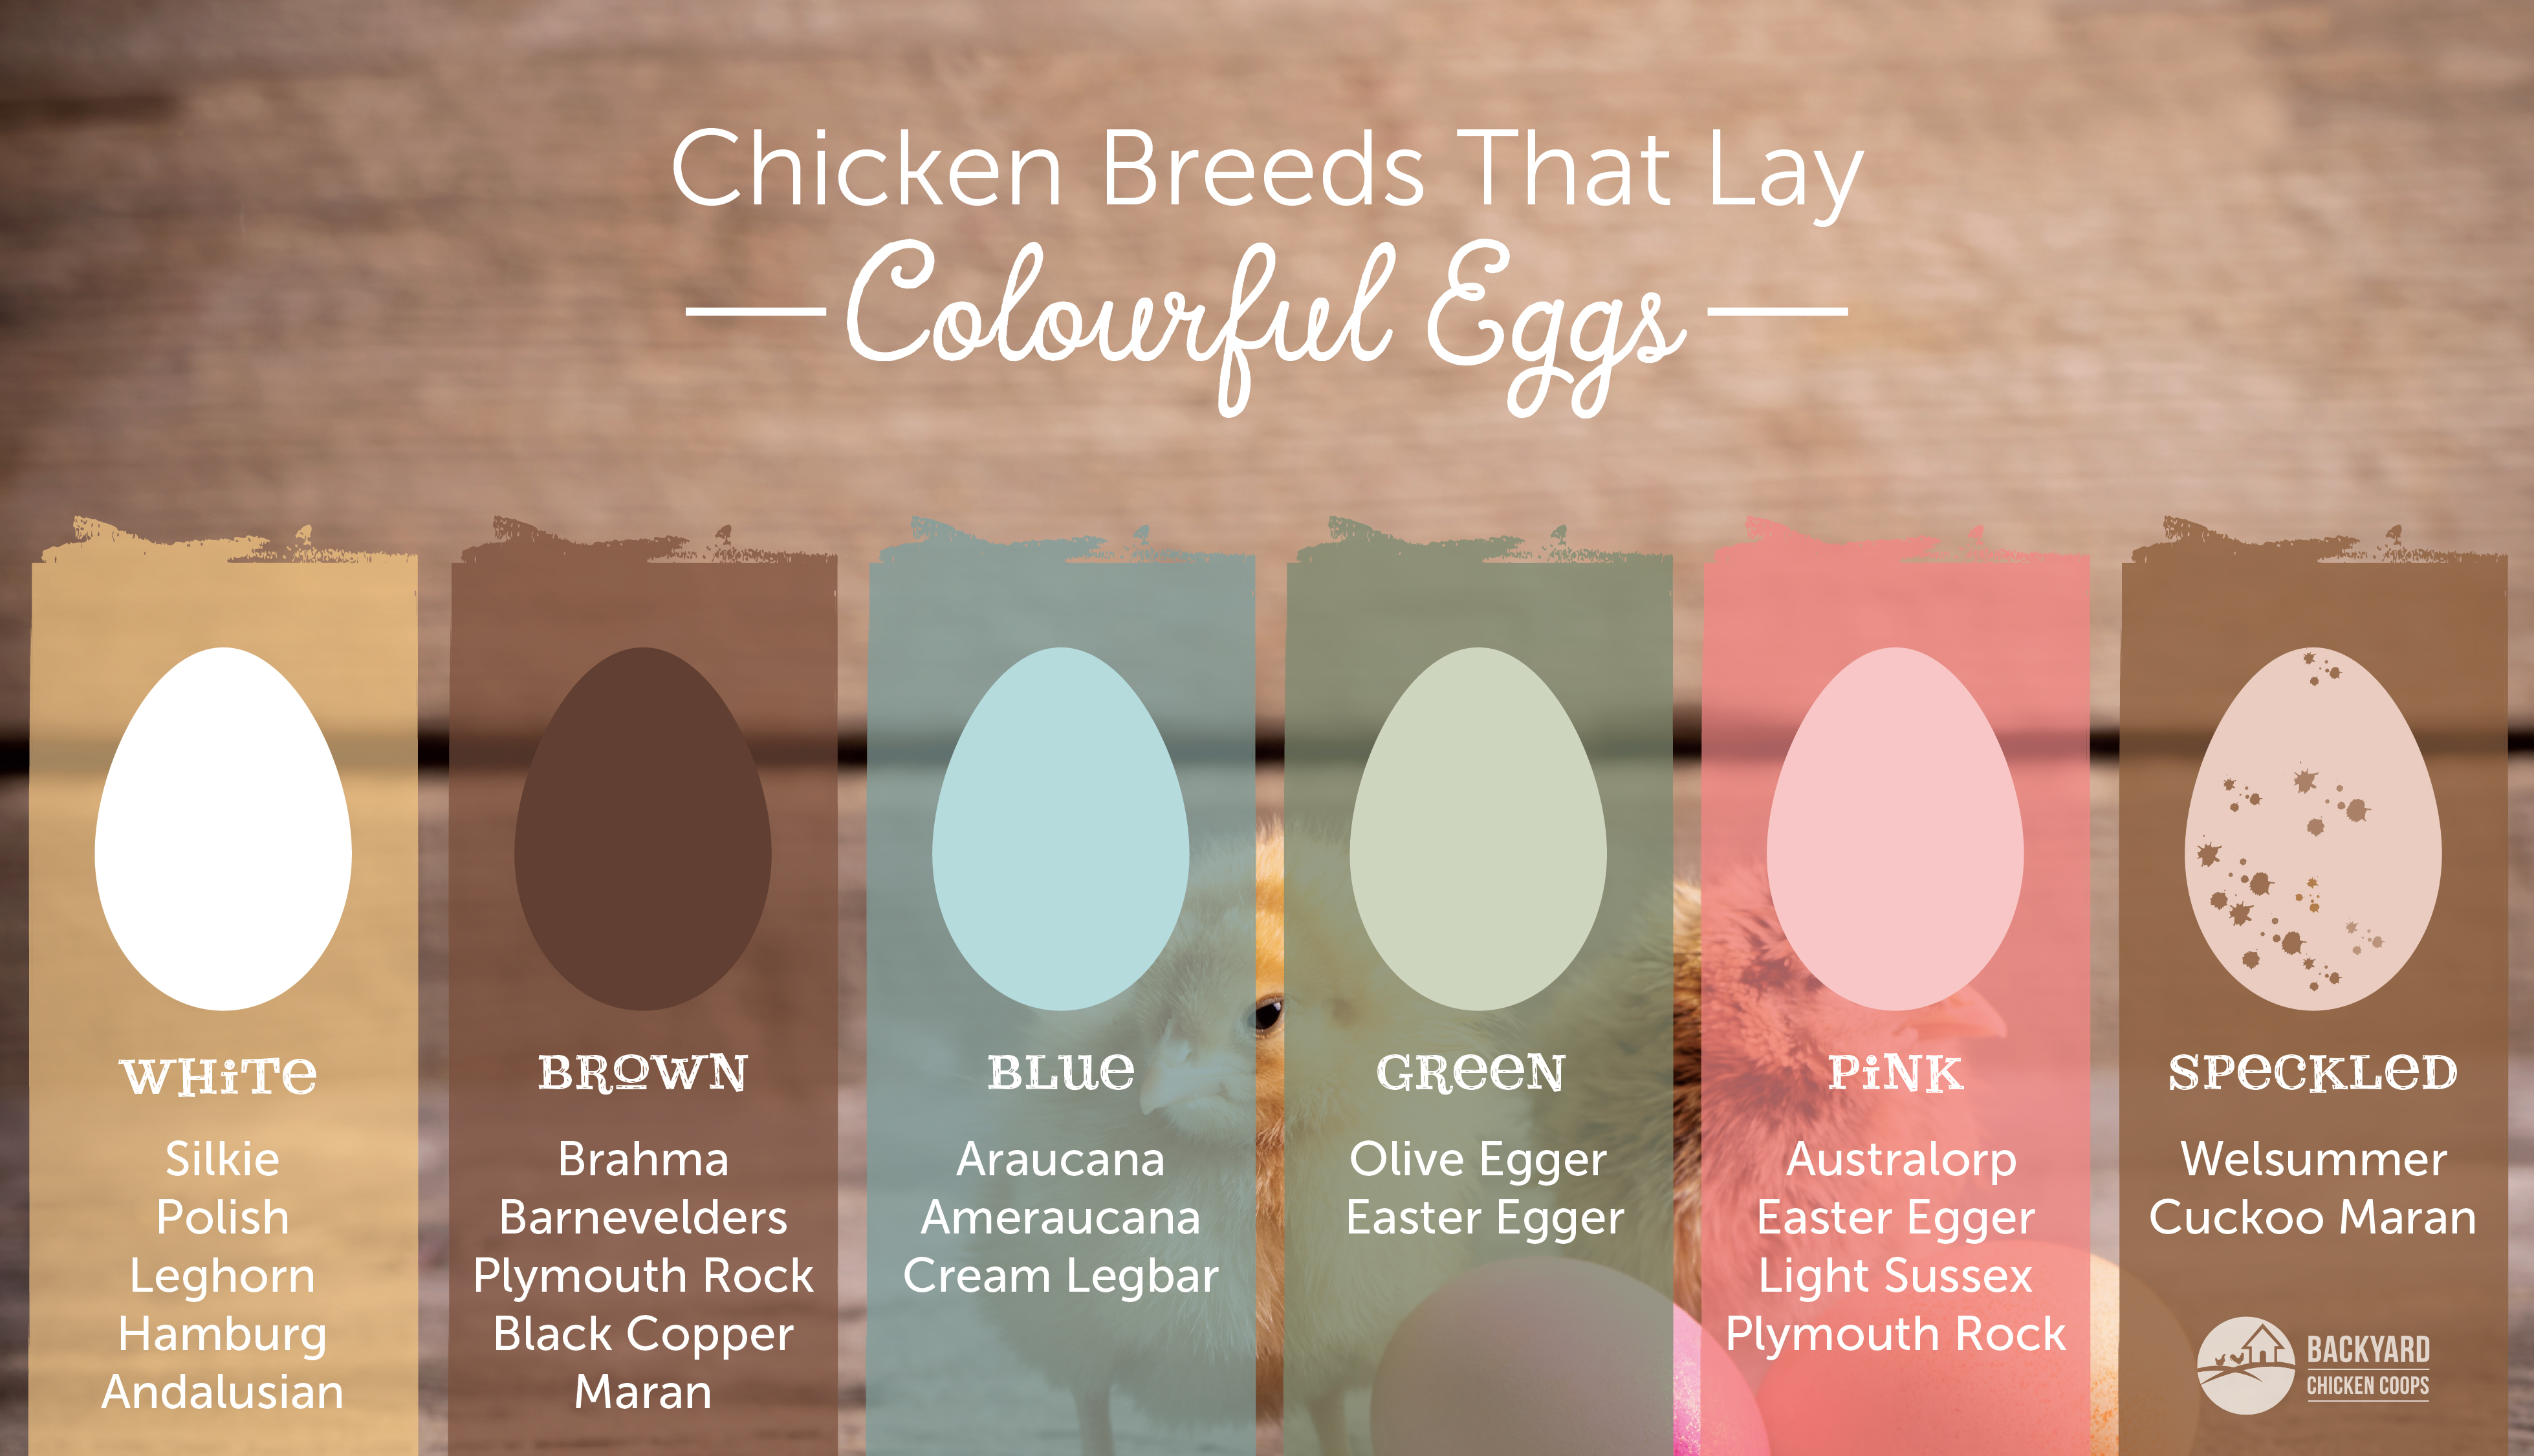 Chicken Breeds That Lay Different Coloured Eggs